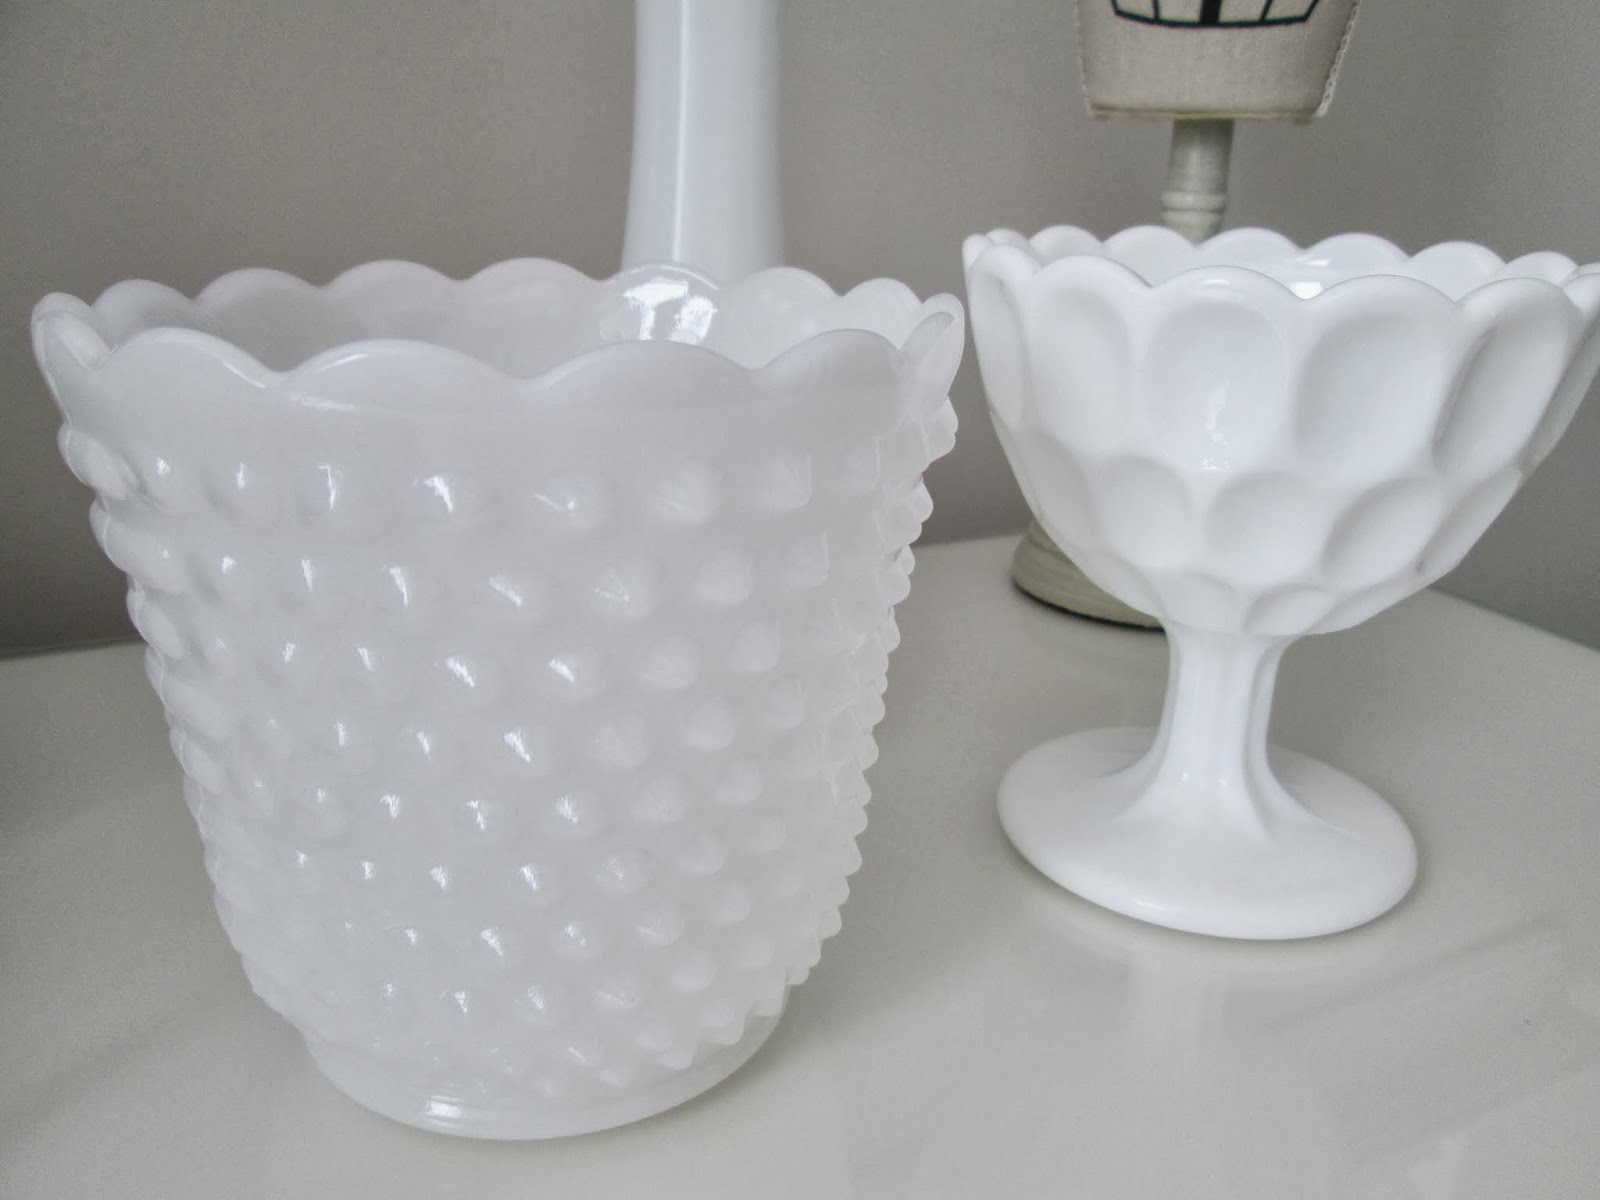 Milk glass thrift store finds